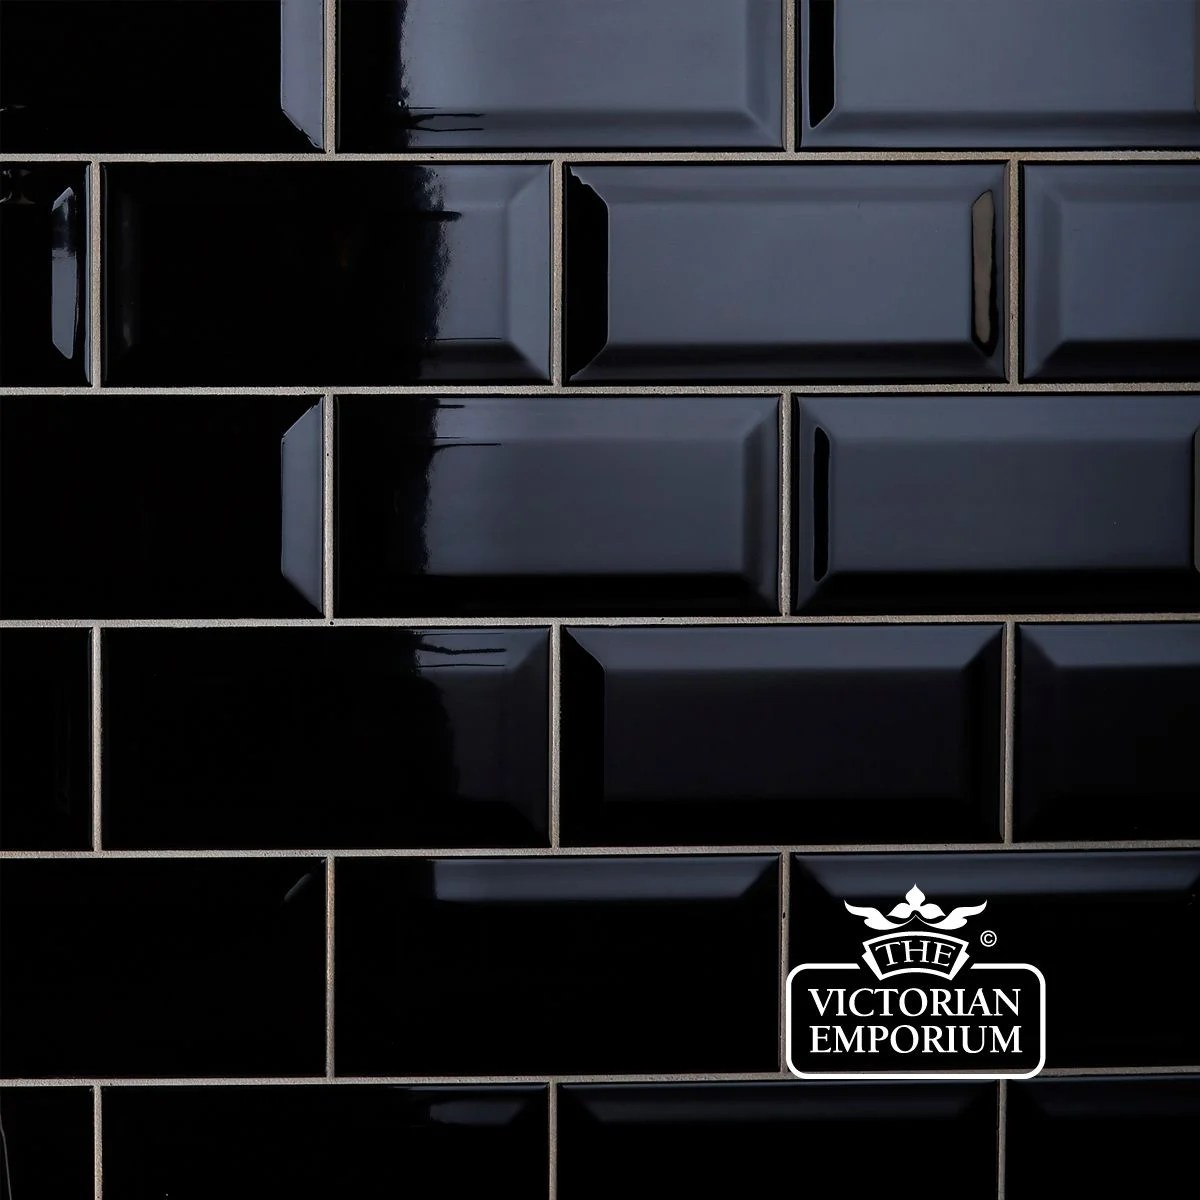 Black And White Kitchen Wall Tiles Bevel Wall Tiles 100x200mm Black Interior Ceramic Wall